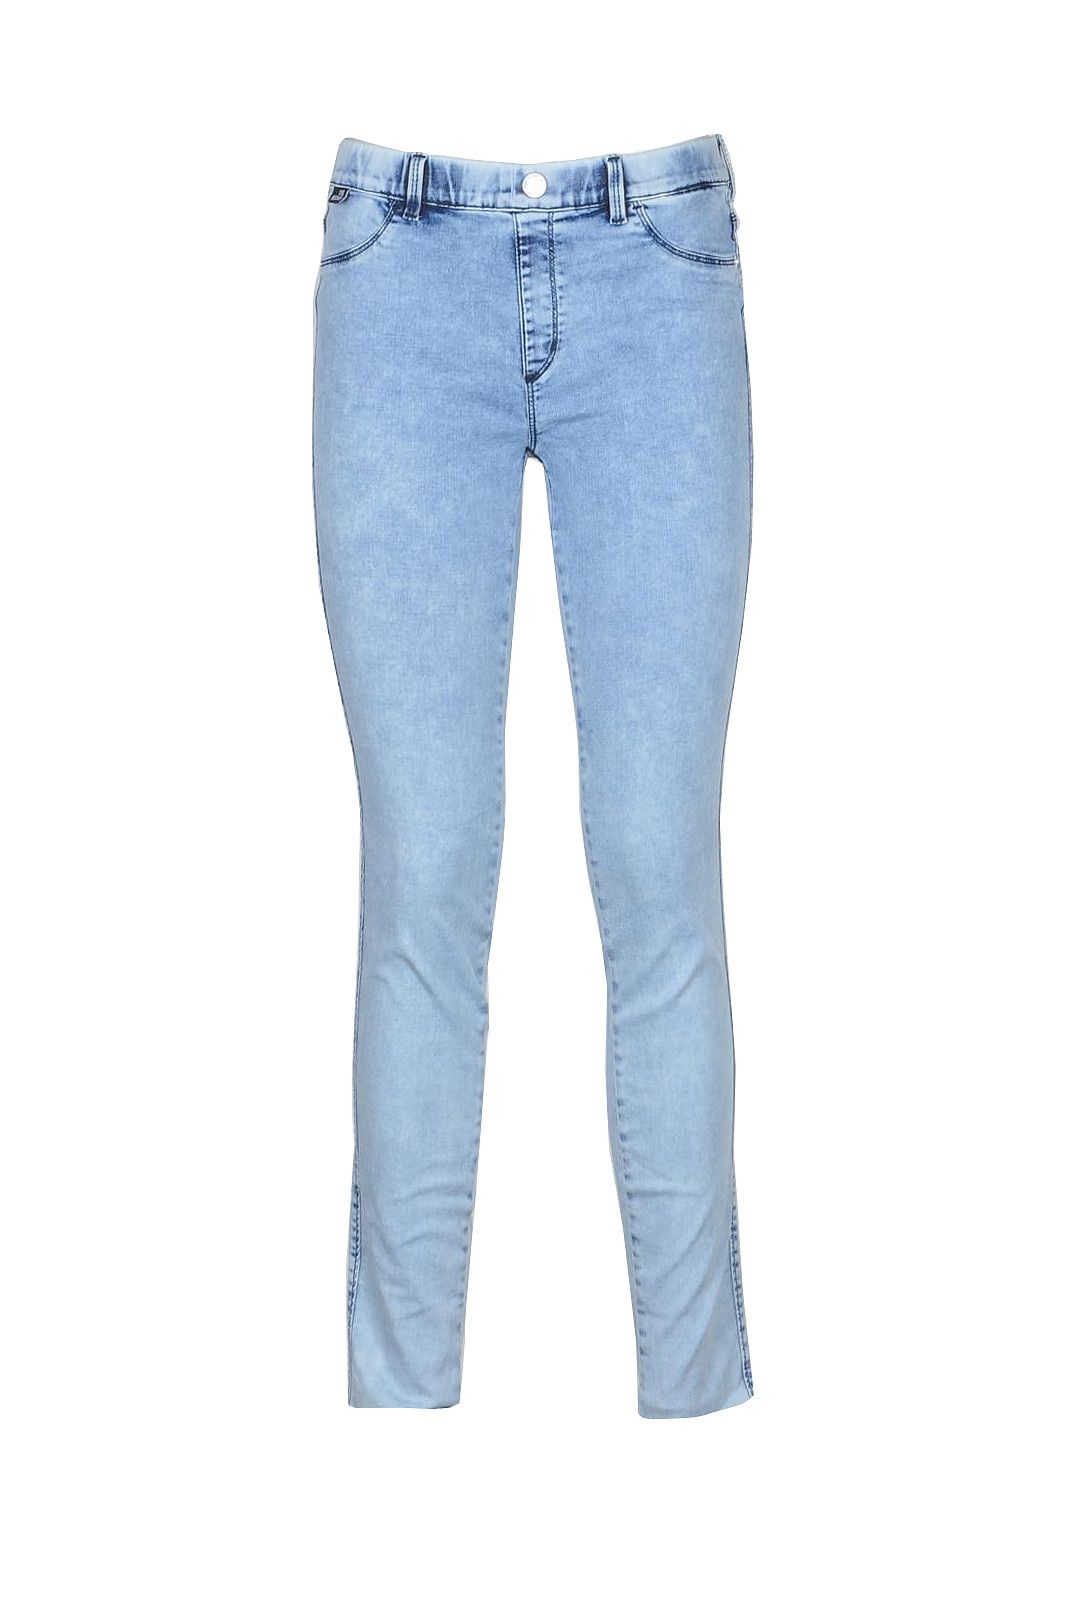 Love Moschino Women's Trousers In Blue